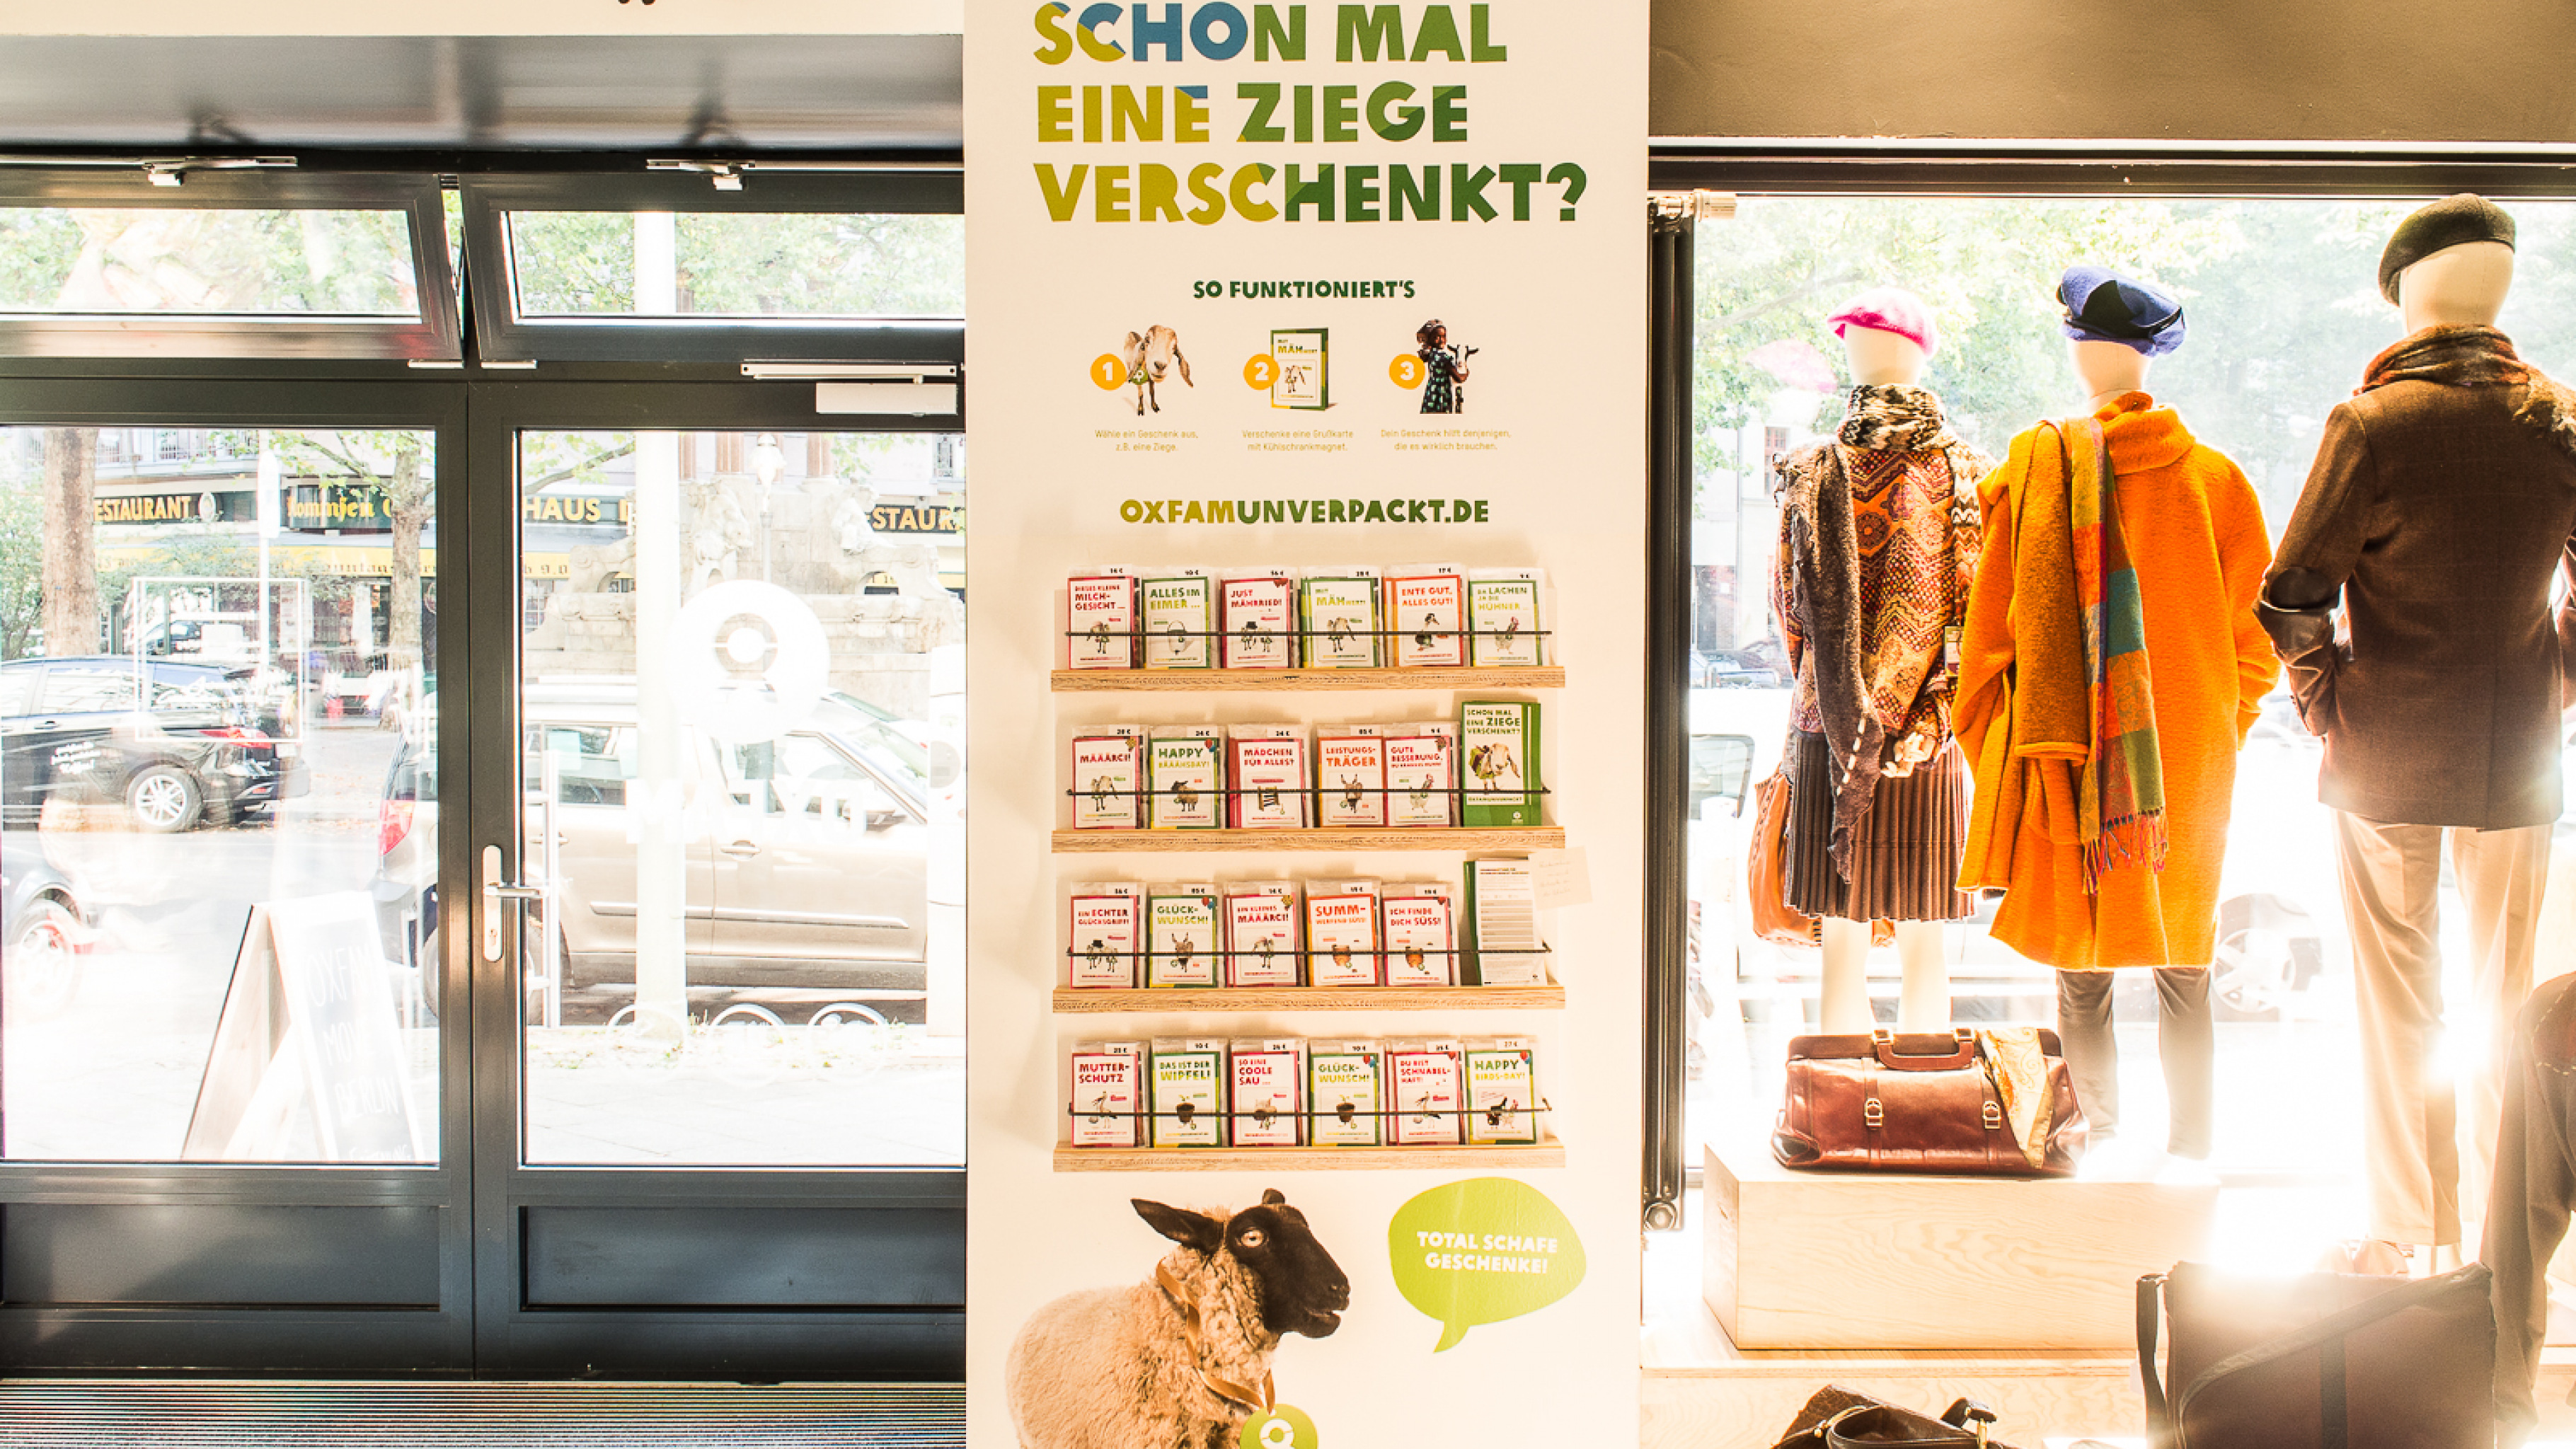 Oxfam MOVE Berlin - OxfamUnverpackt